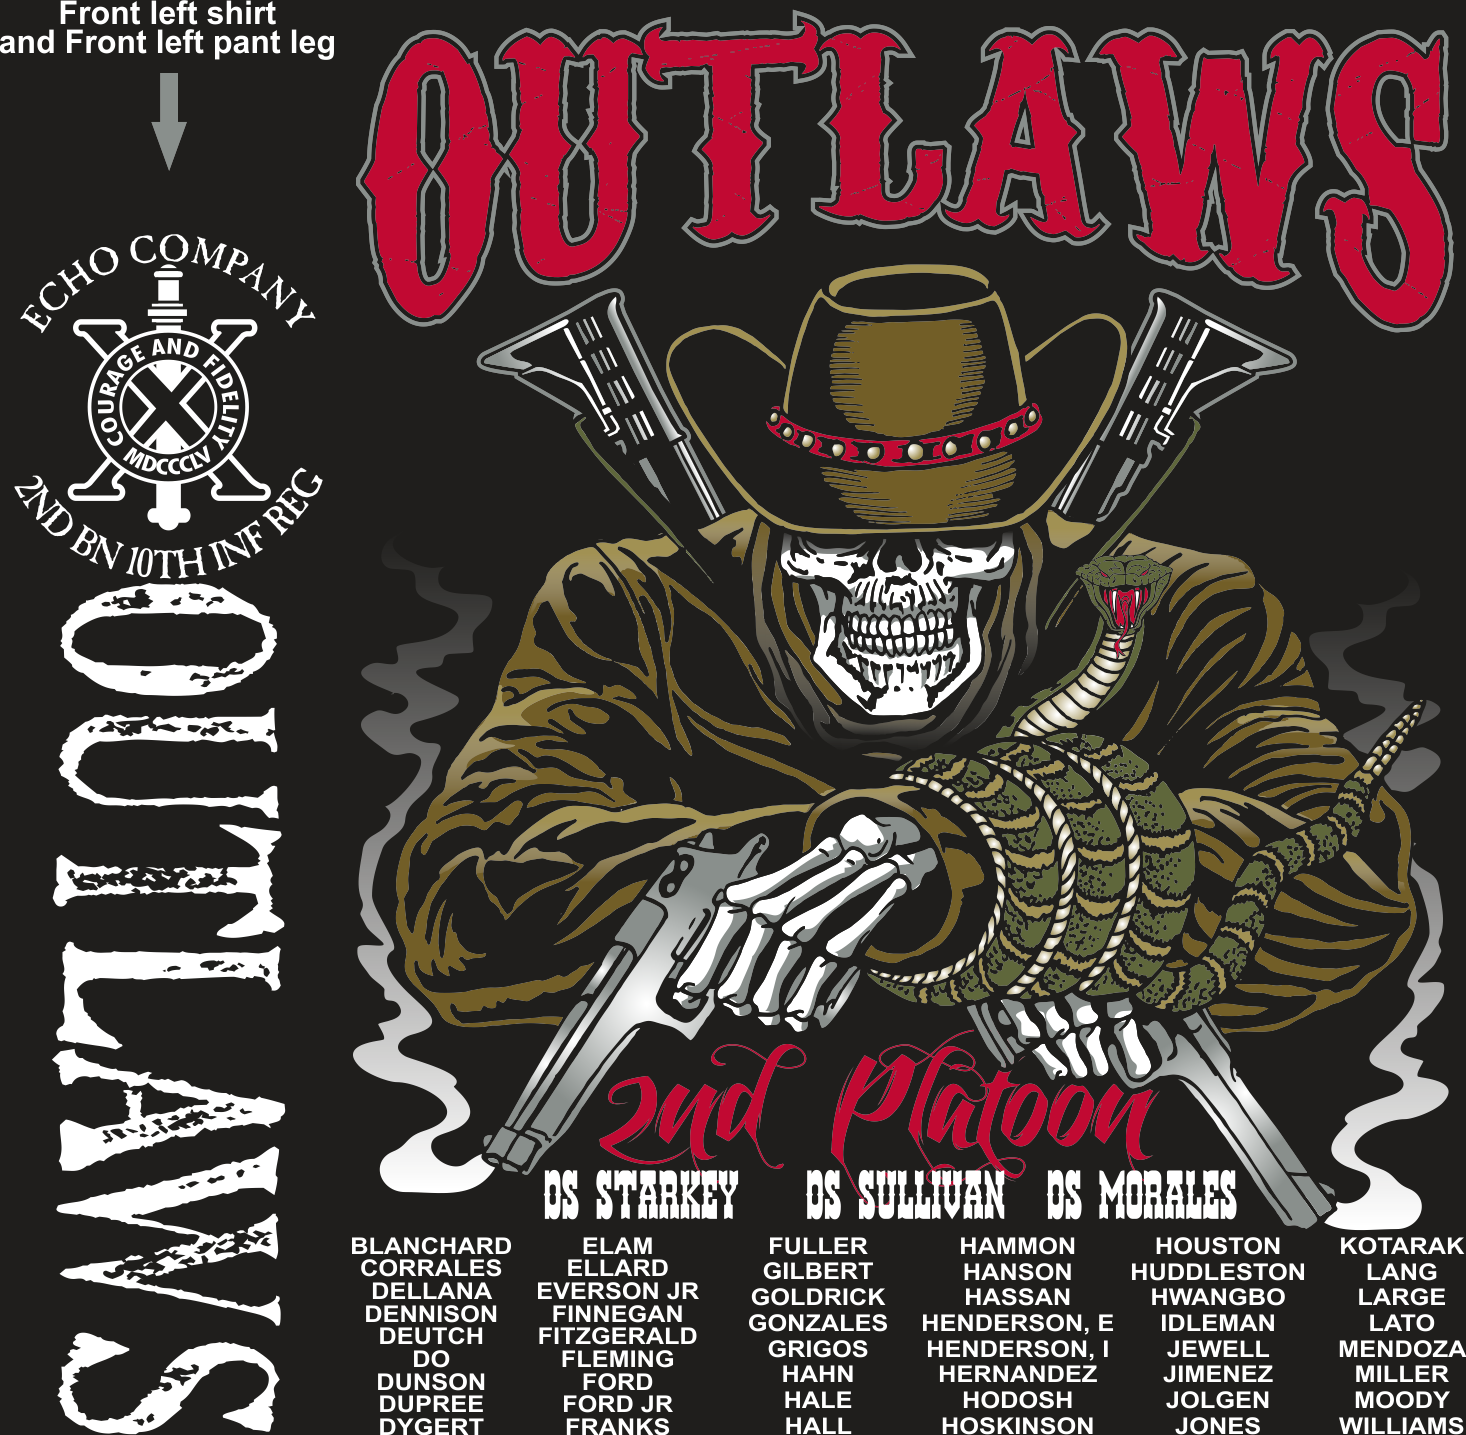 ECHO 2-10 OUTLAWS GRADUATING DAY 3-15-2018 digital